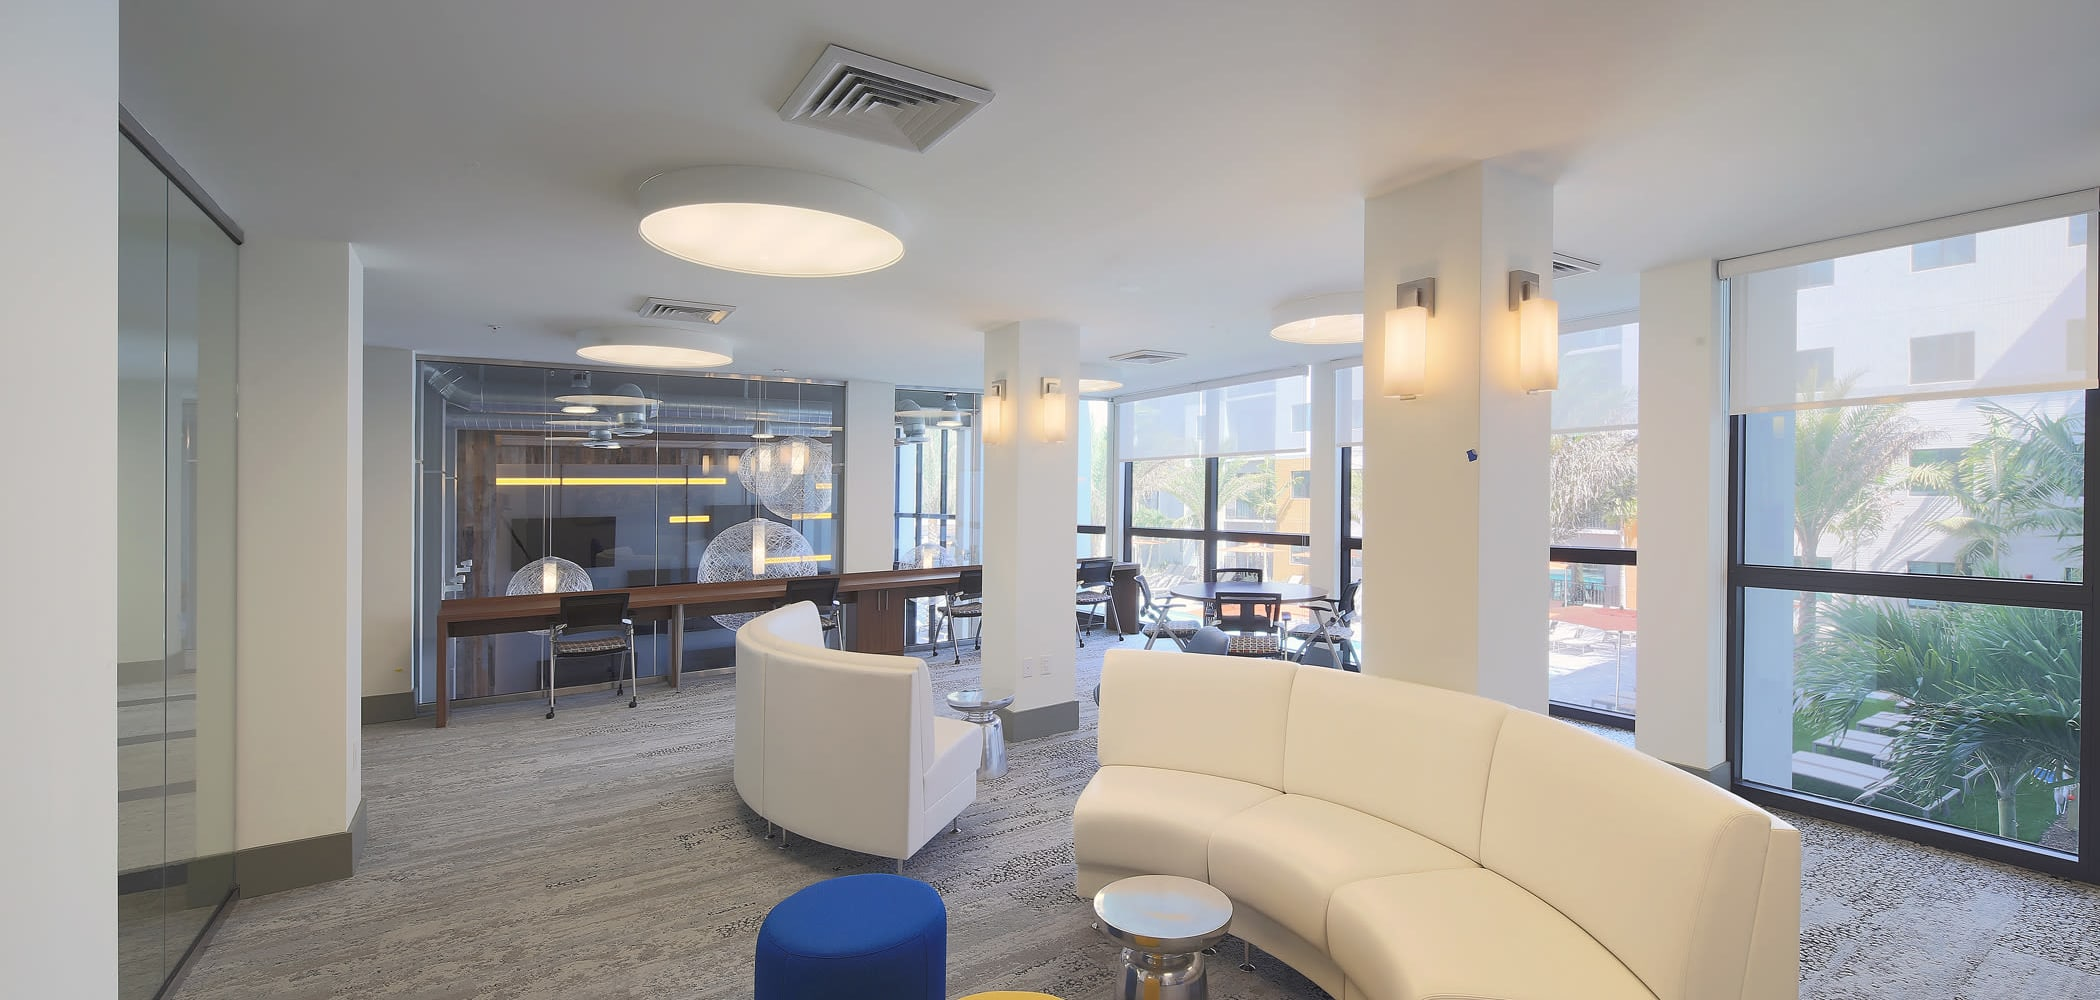 Lounge area for students to read or study at University Park in Boca Raton, Florida